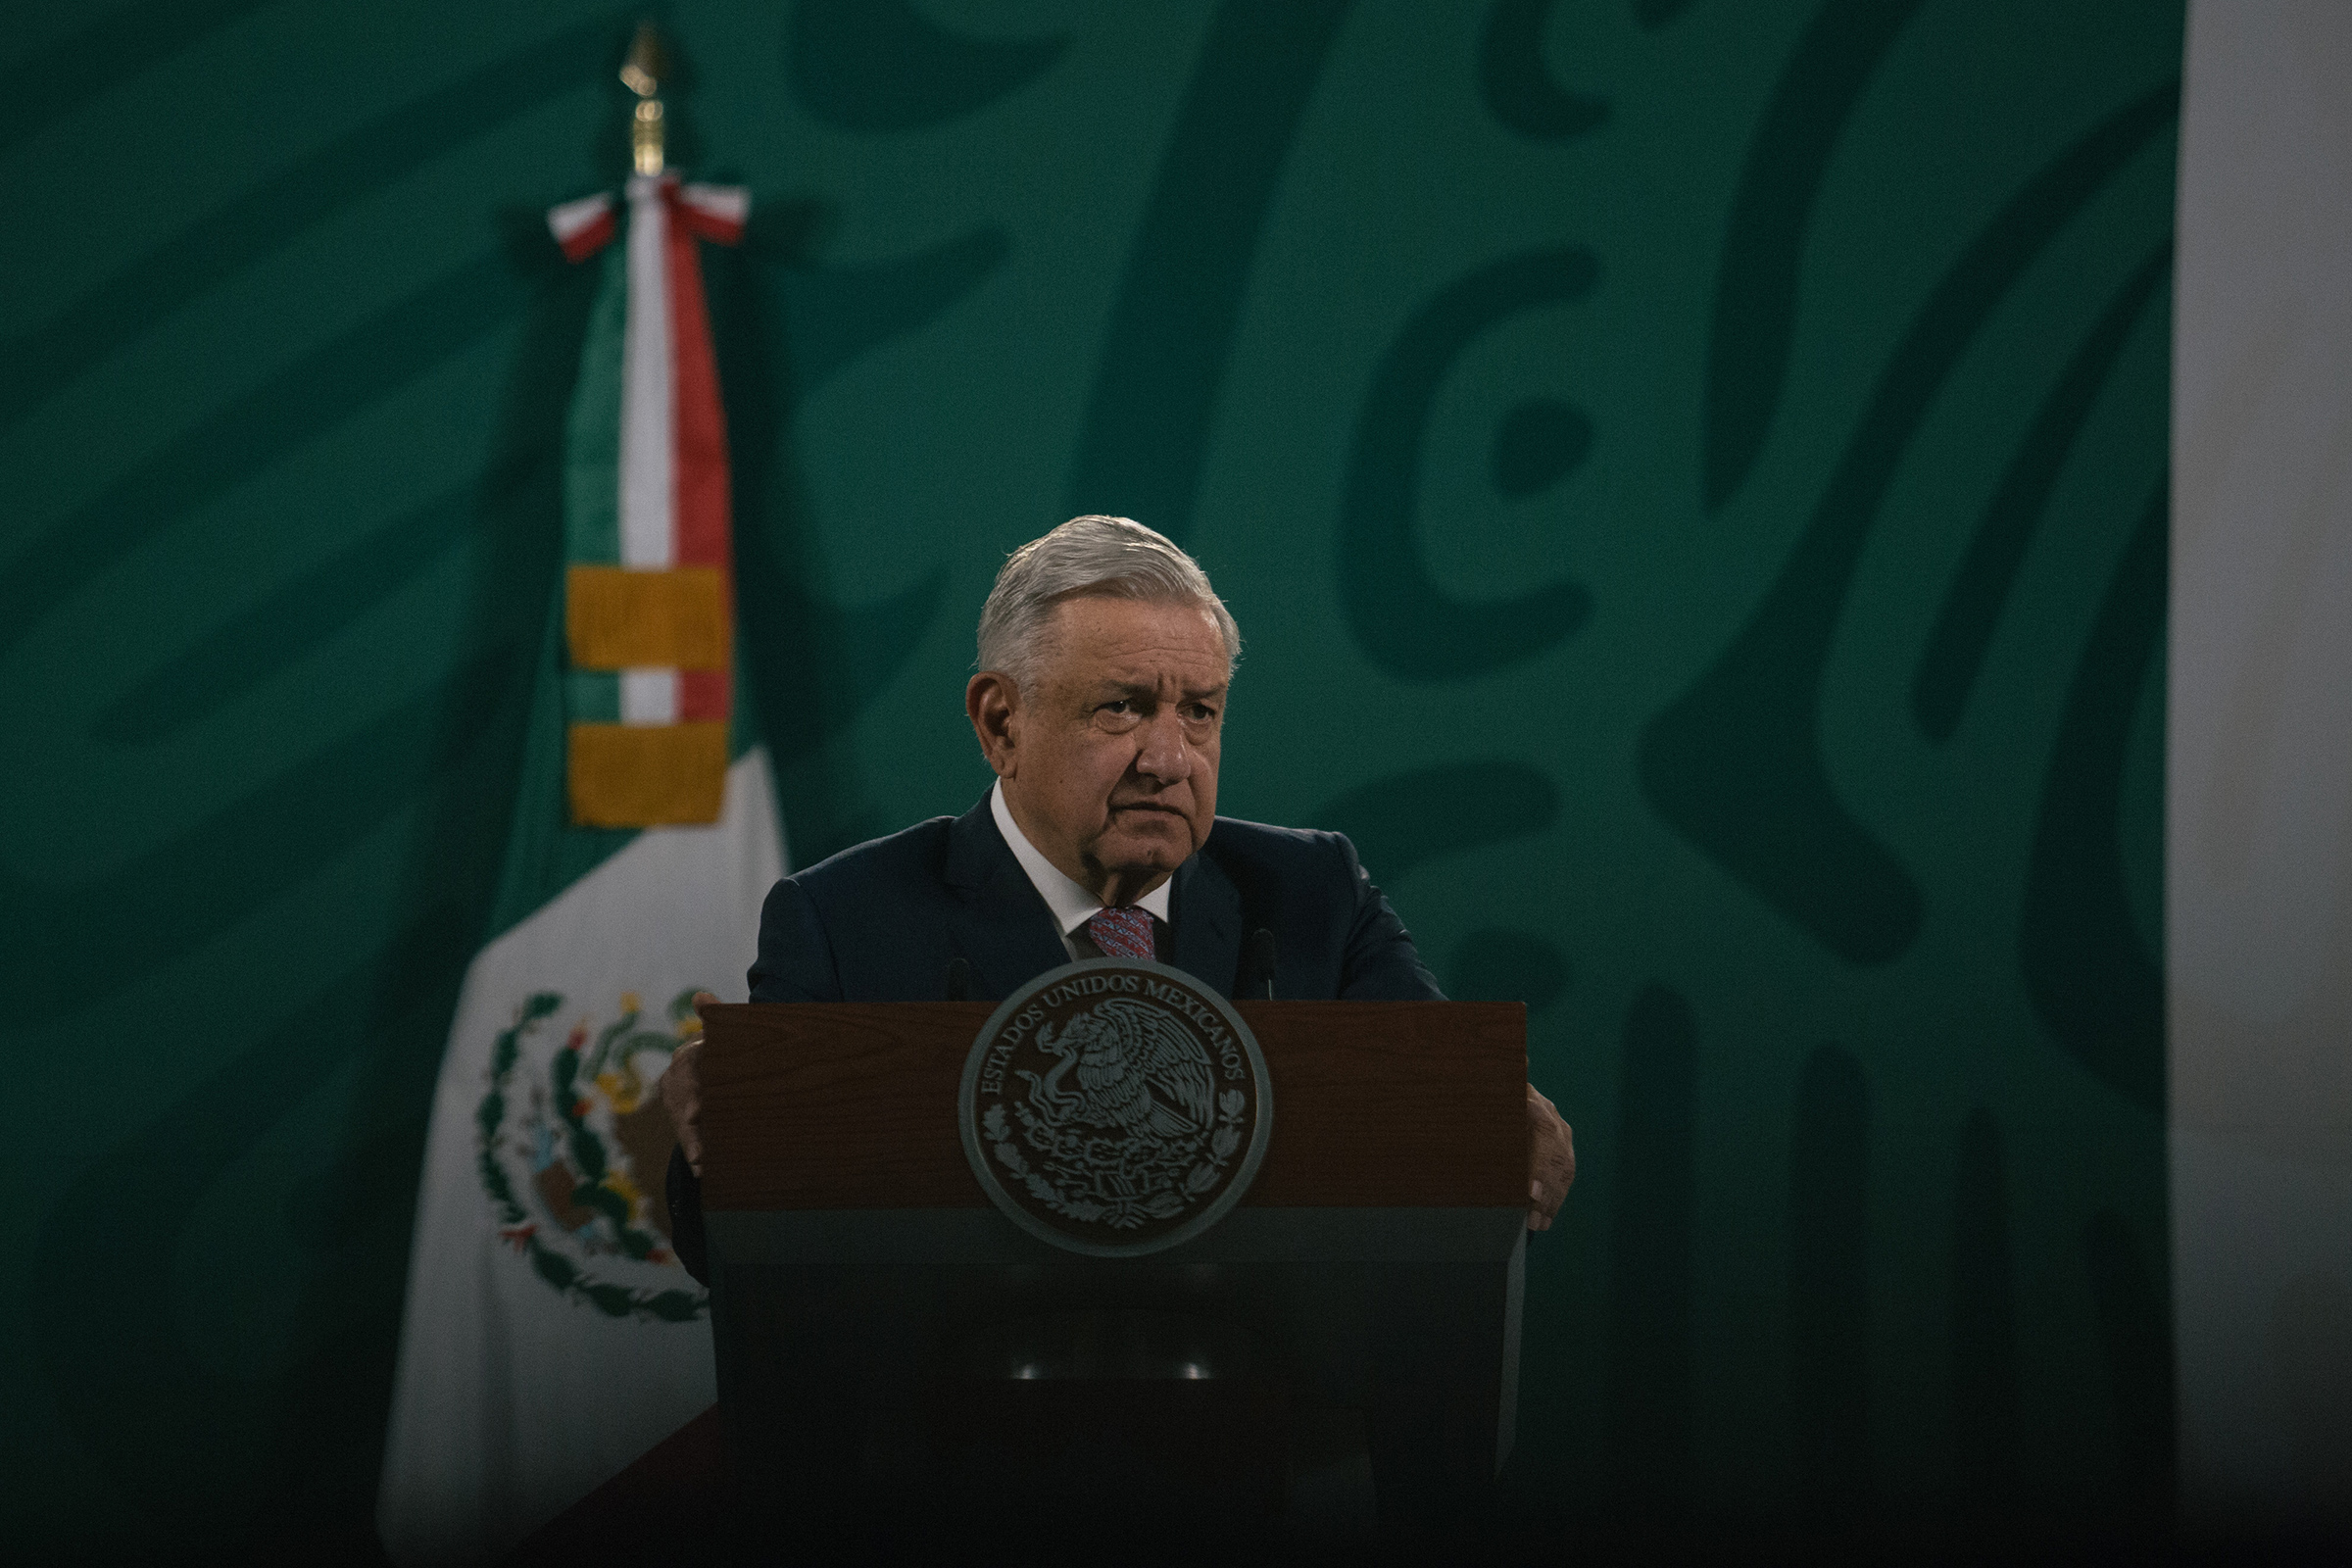 President Andrés Manuel López Obrador speaks during a news conference in Mexico City on Feb. 8. This was his first briefing after announcing he had Covid-19 and began a quarantine.